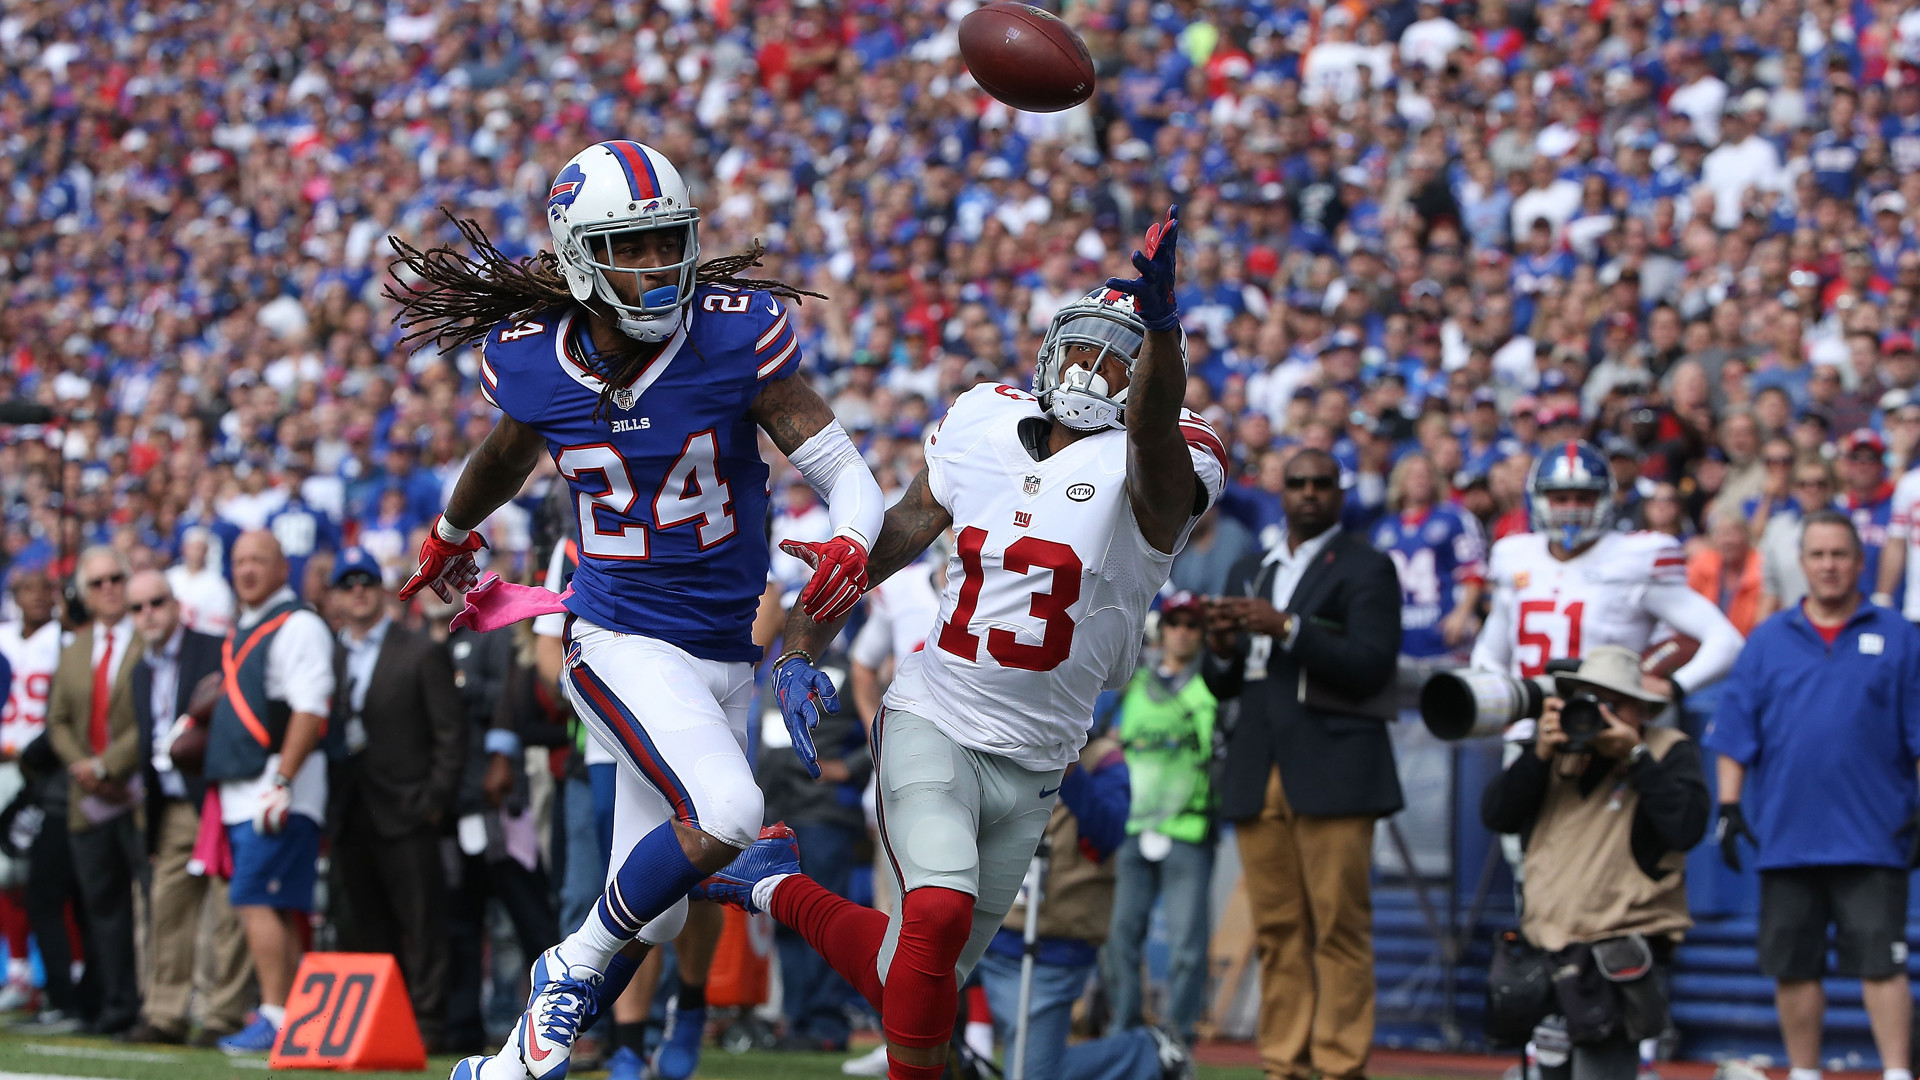 Odell Beckham Jr. nearly repeated 'The Catch' against the Buffalo Bills, but